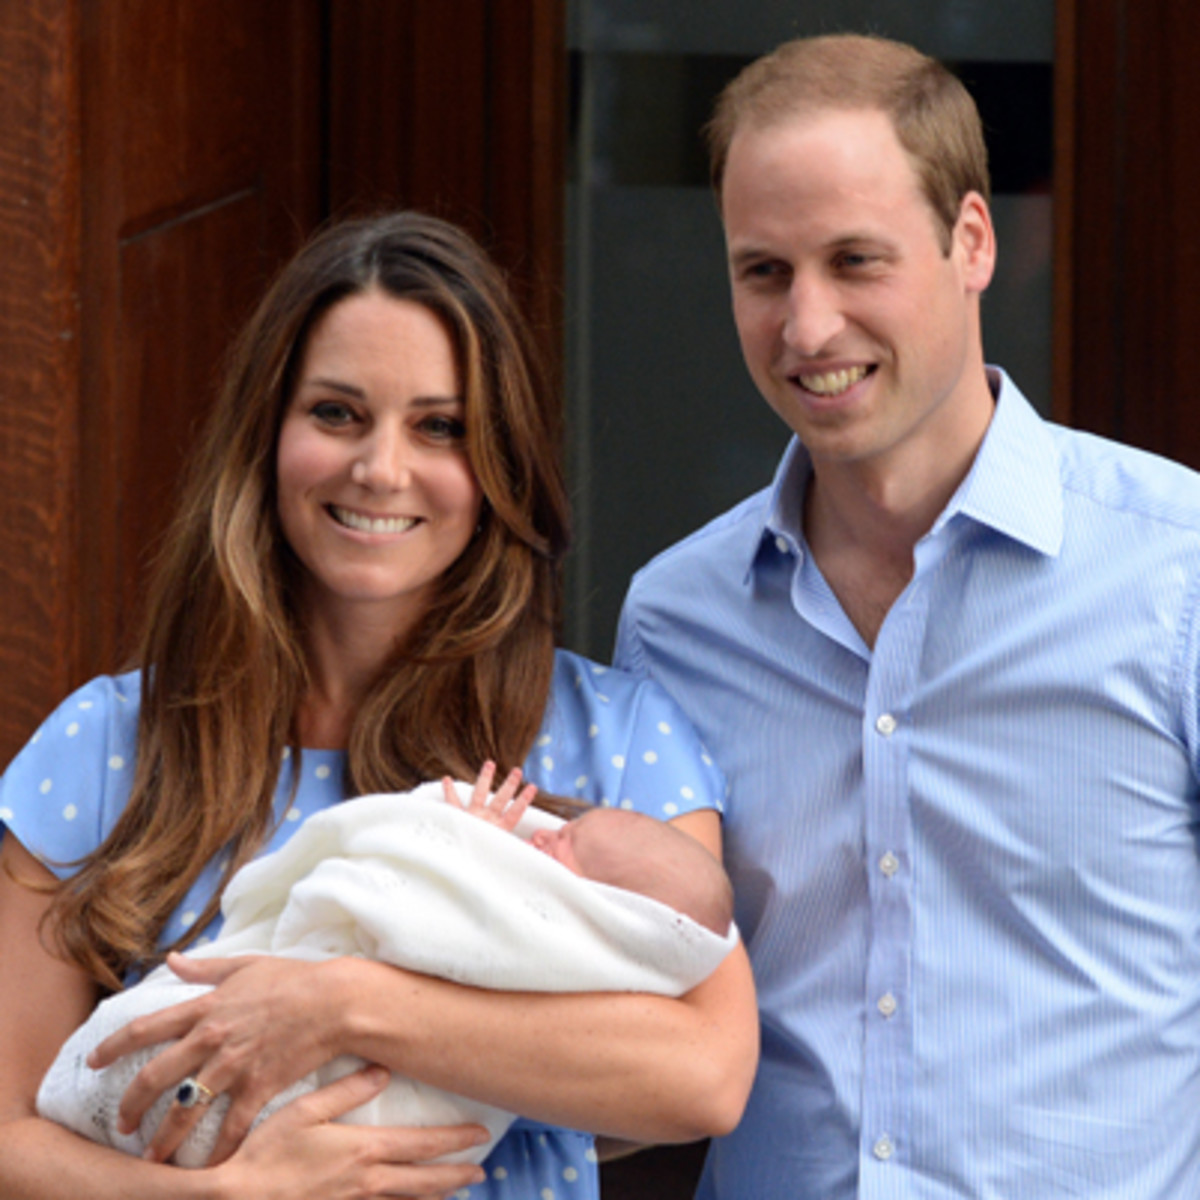 Prince George Prince Biography – Royal Family Baby Announcement